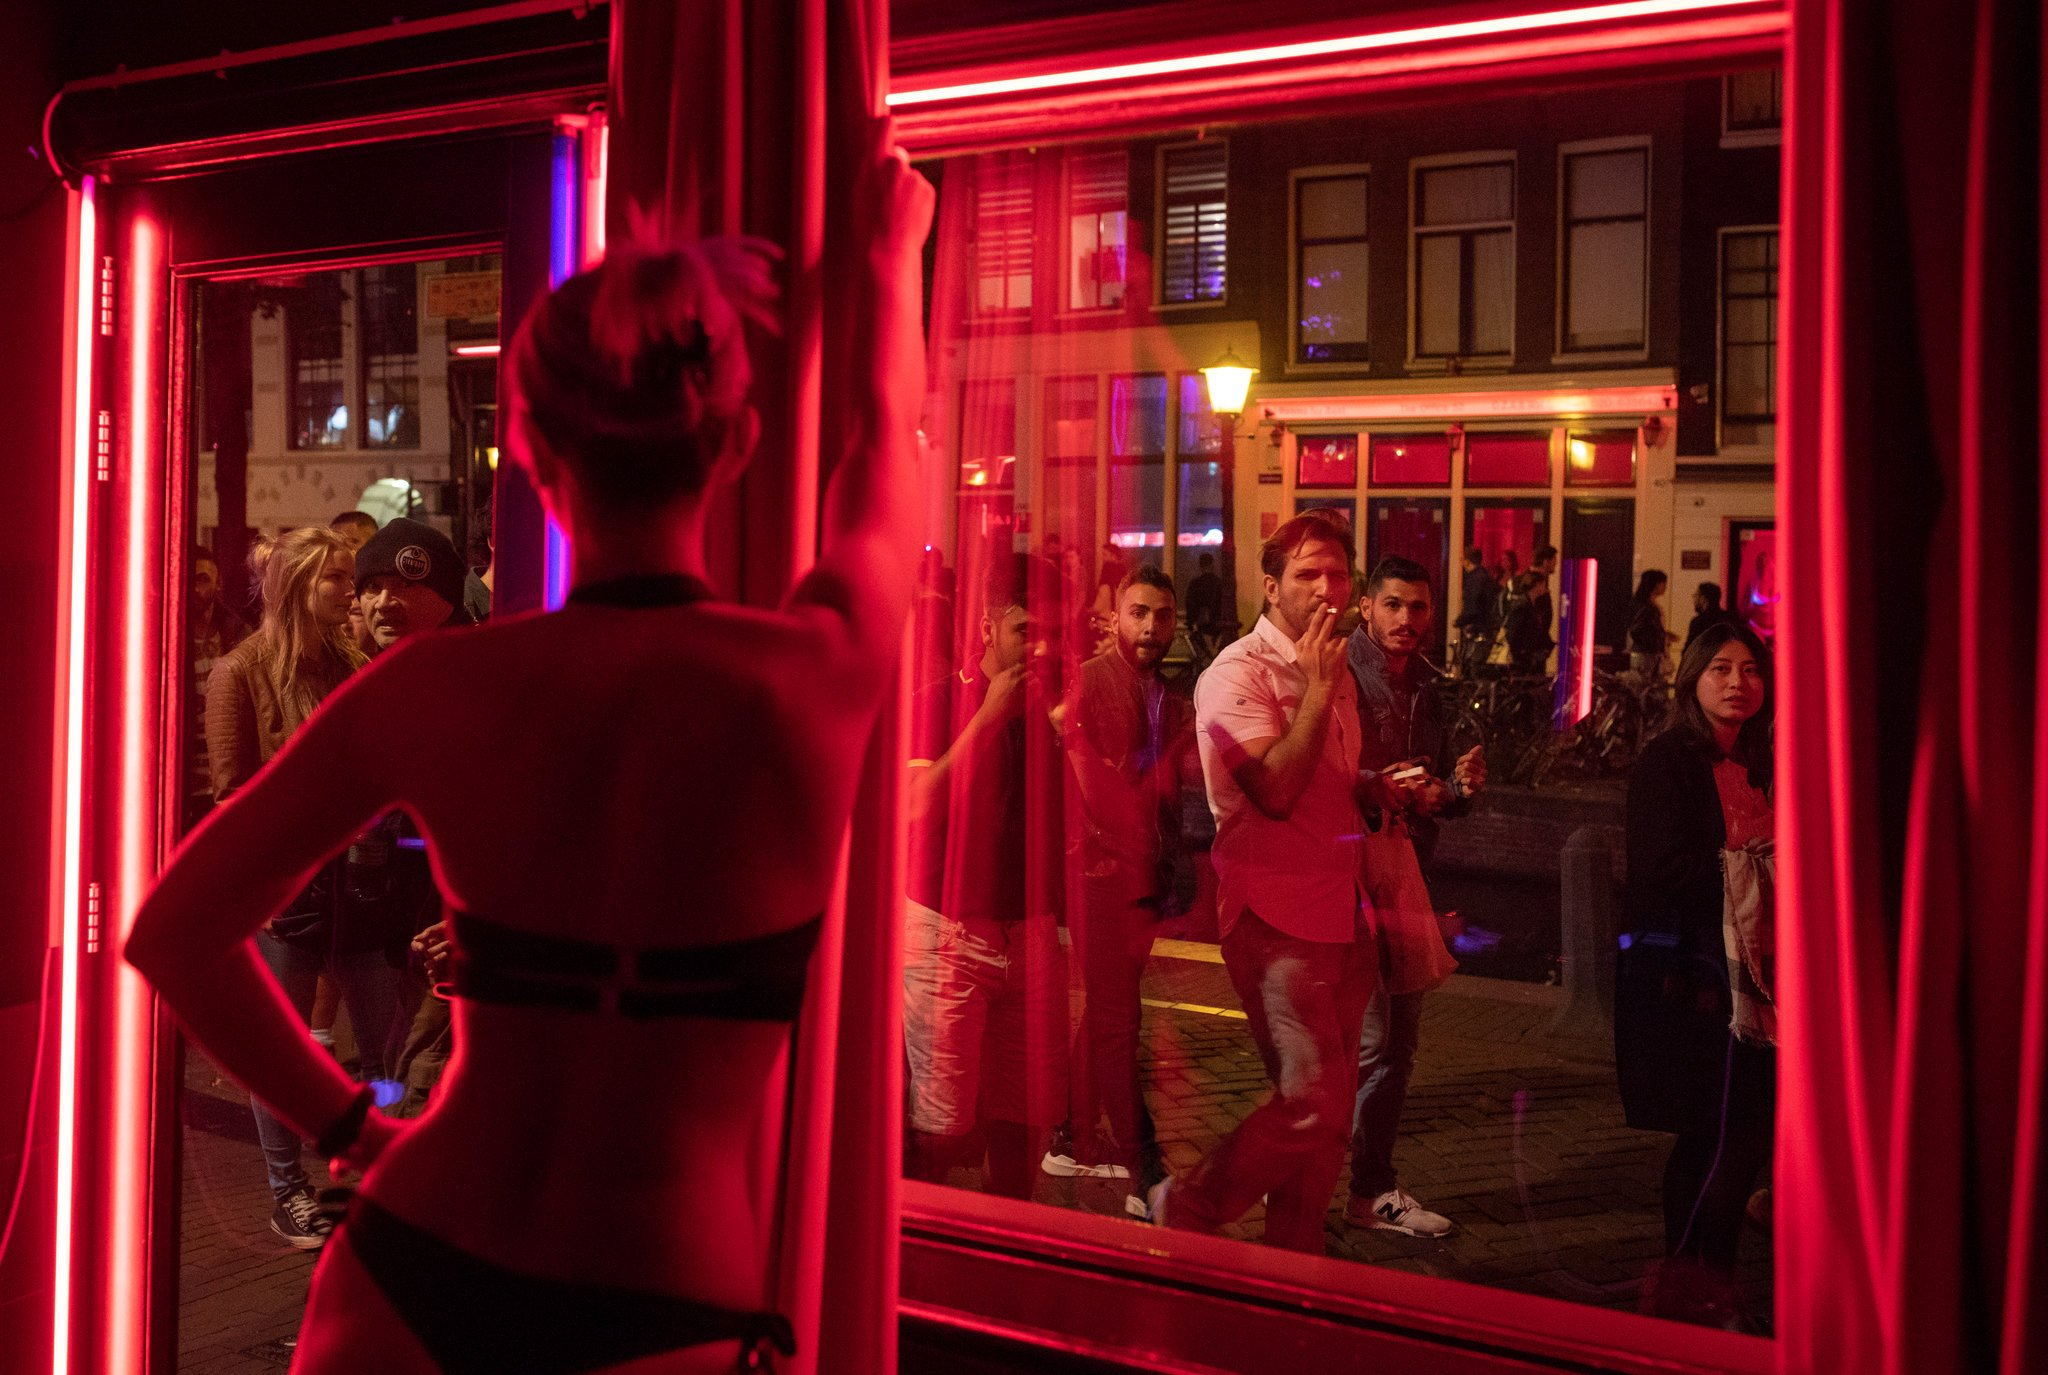 Amsterdam's Red Light District may soon become a thing of the past